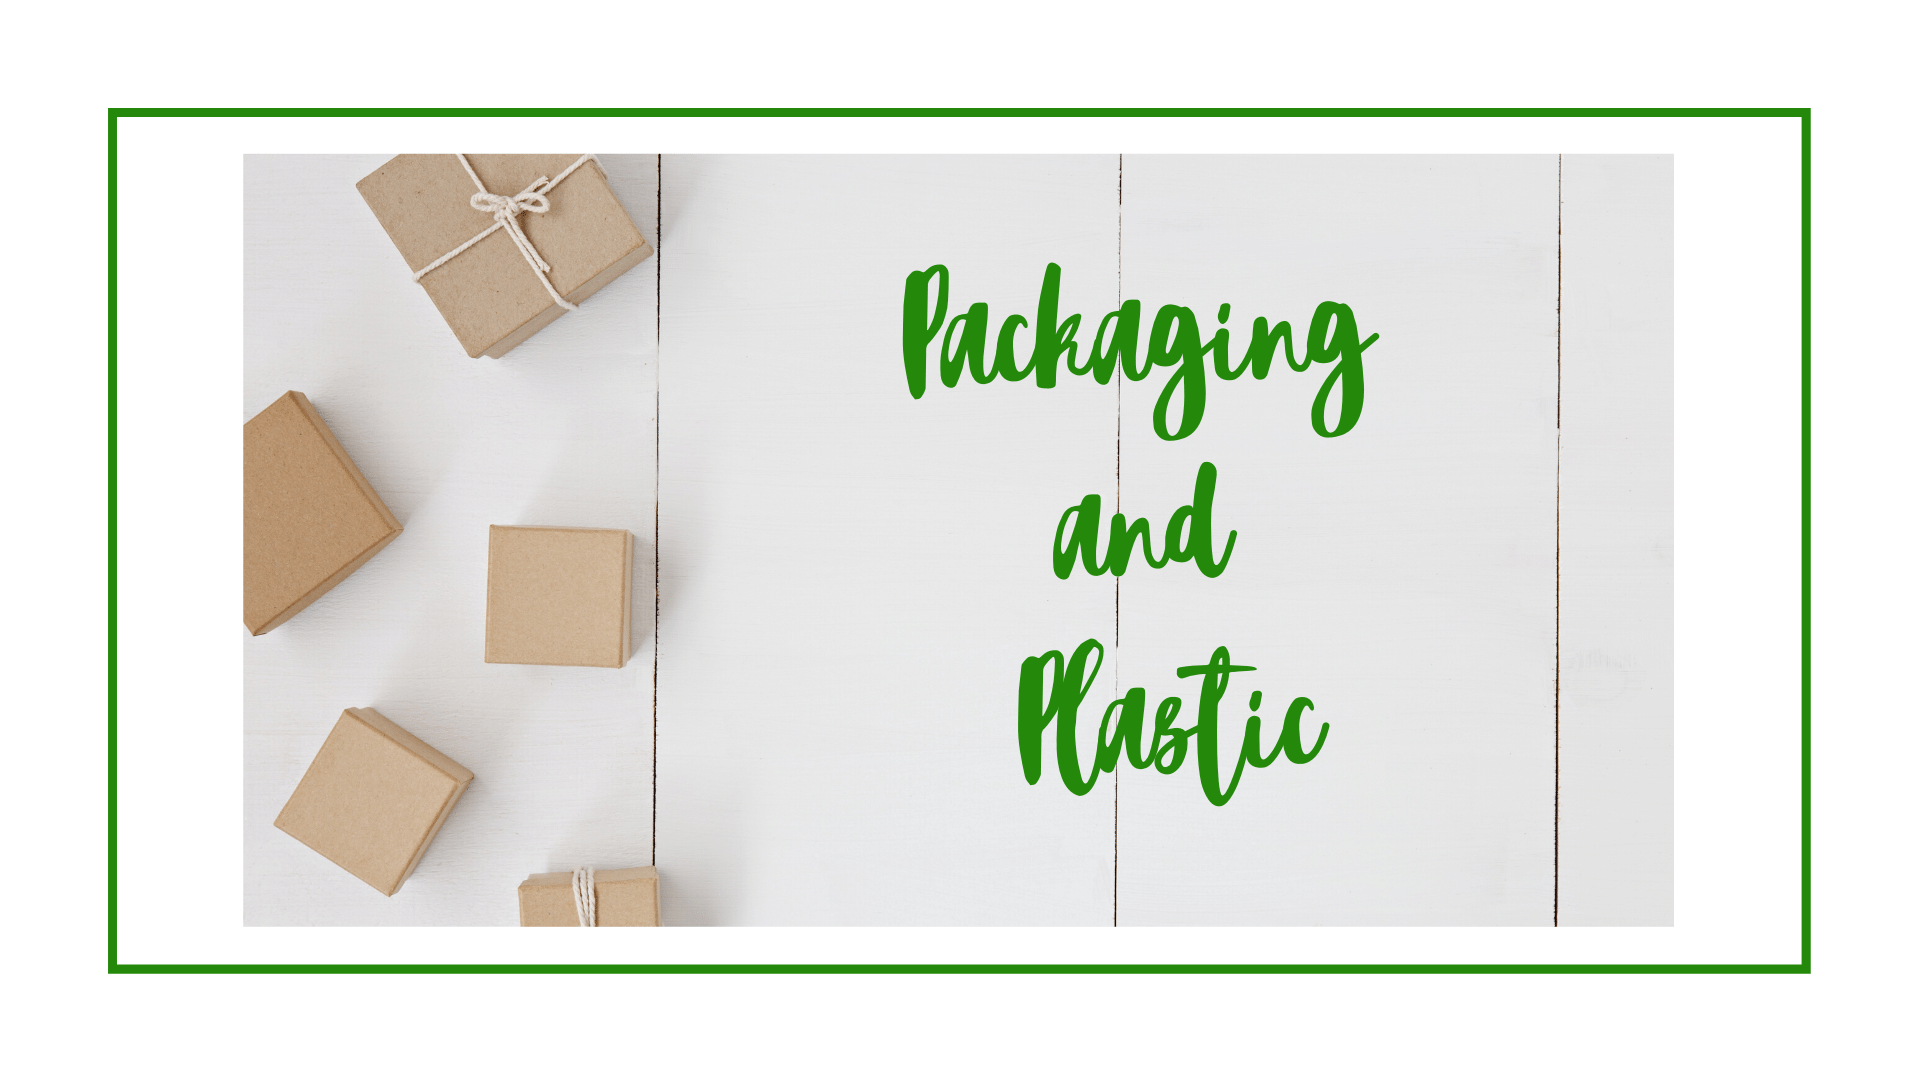 Packaging and Plastic